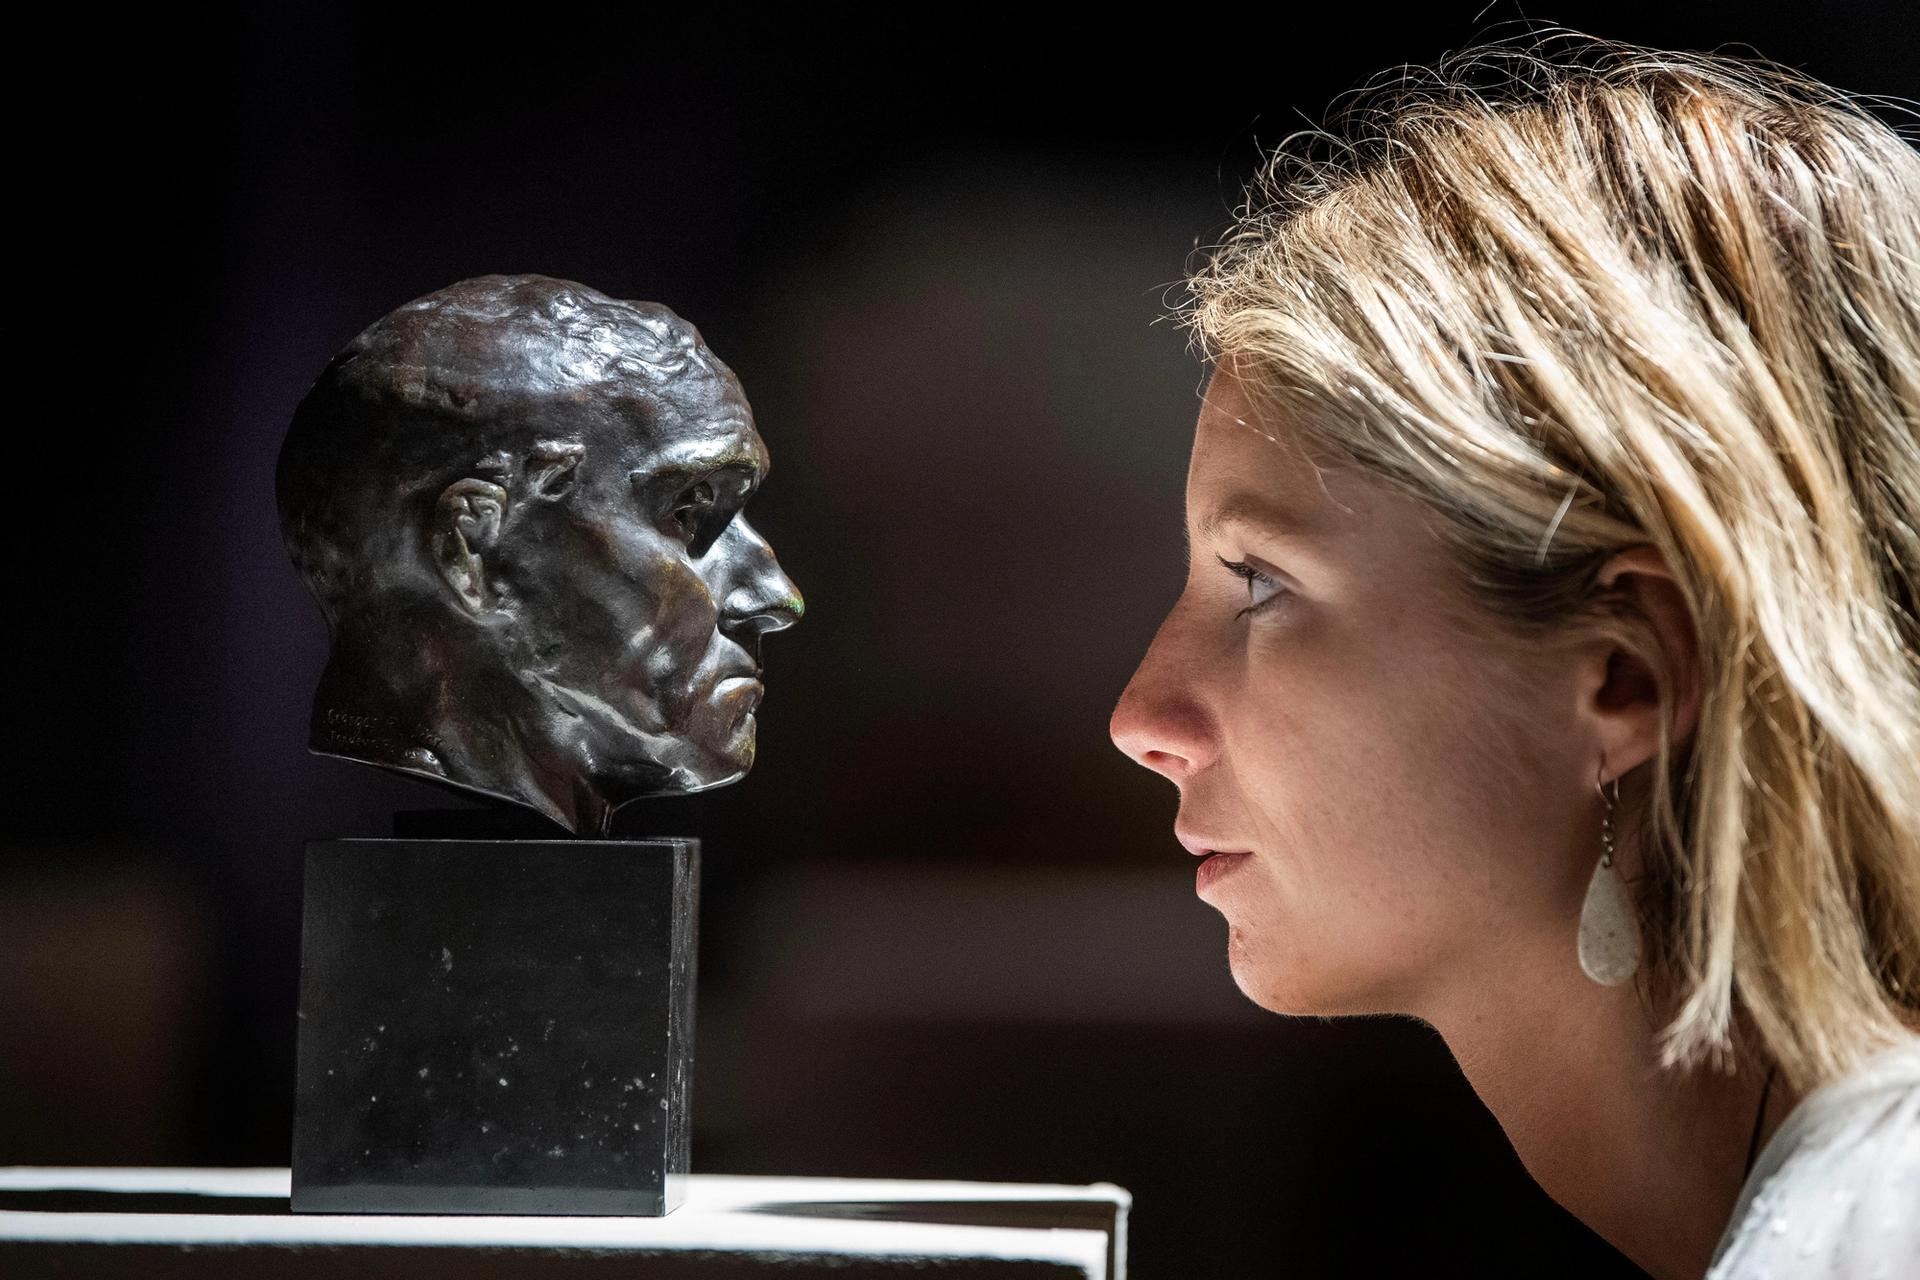 A member of Bonhams staff looks at a sculpture by Auguste Rodin before it is offered for sale. PA Images / Alamy Stock Photo